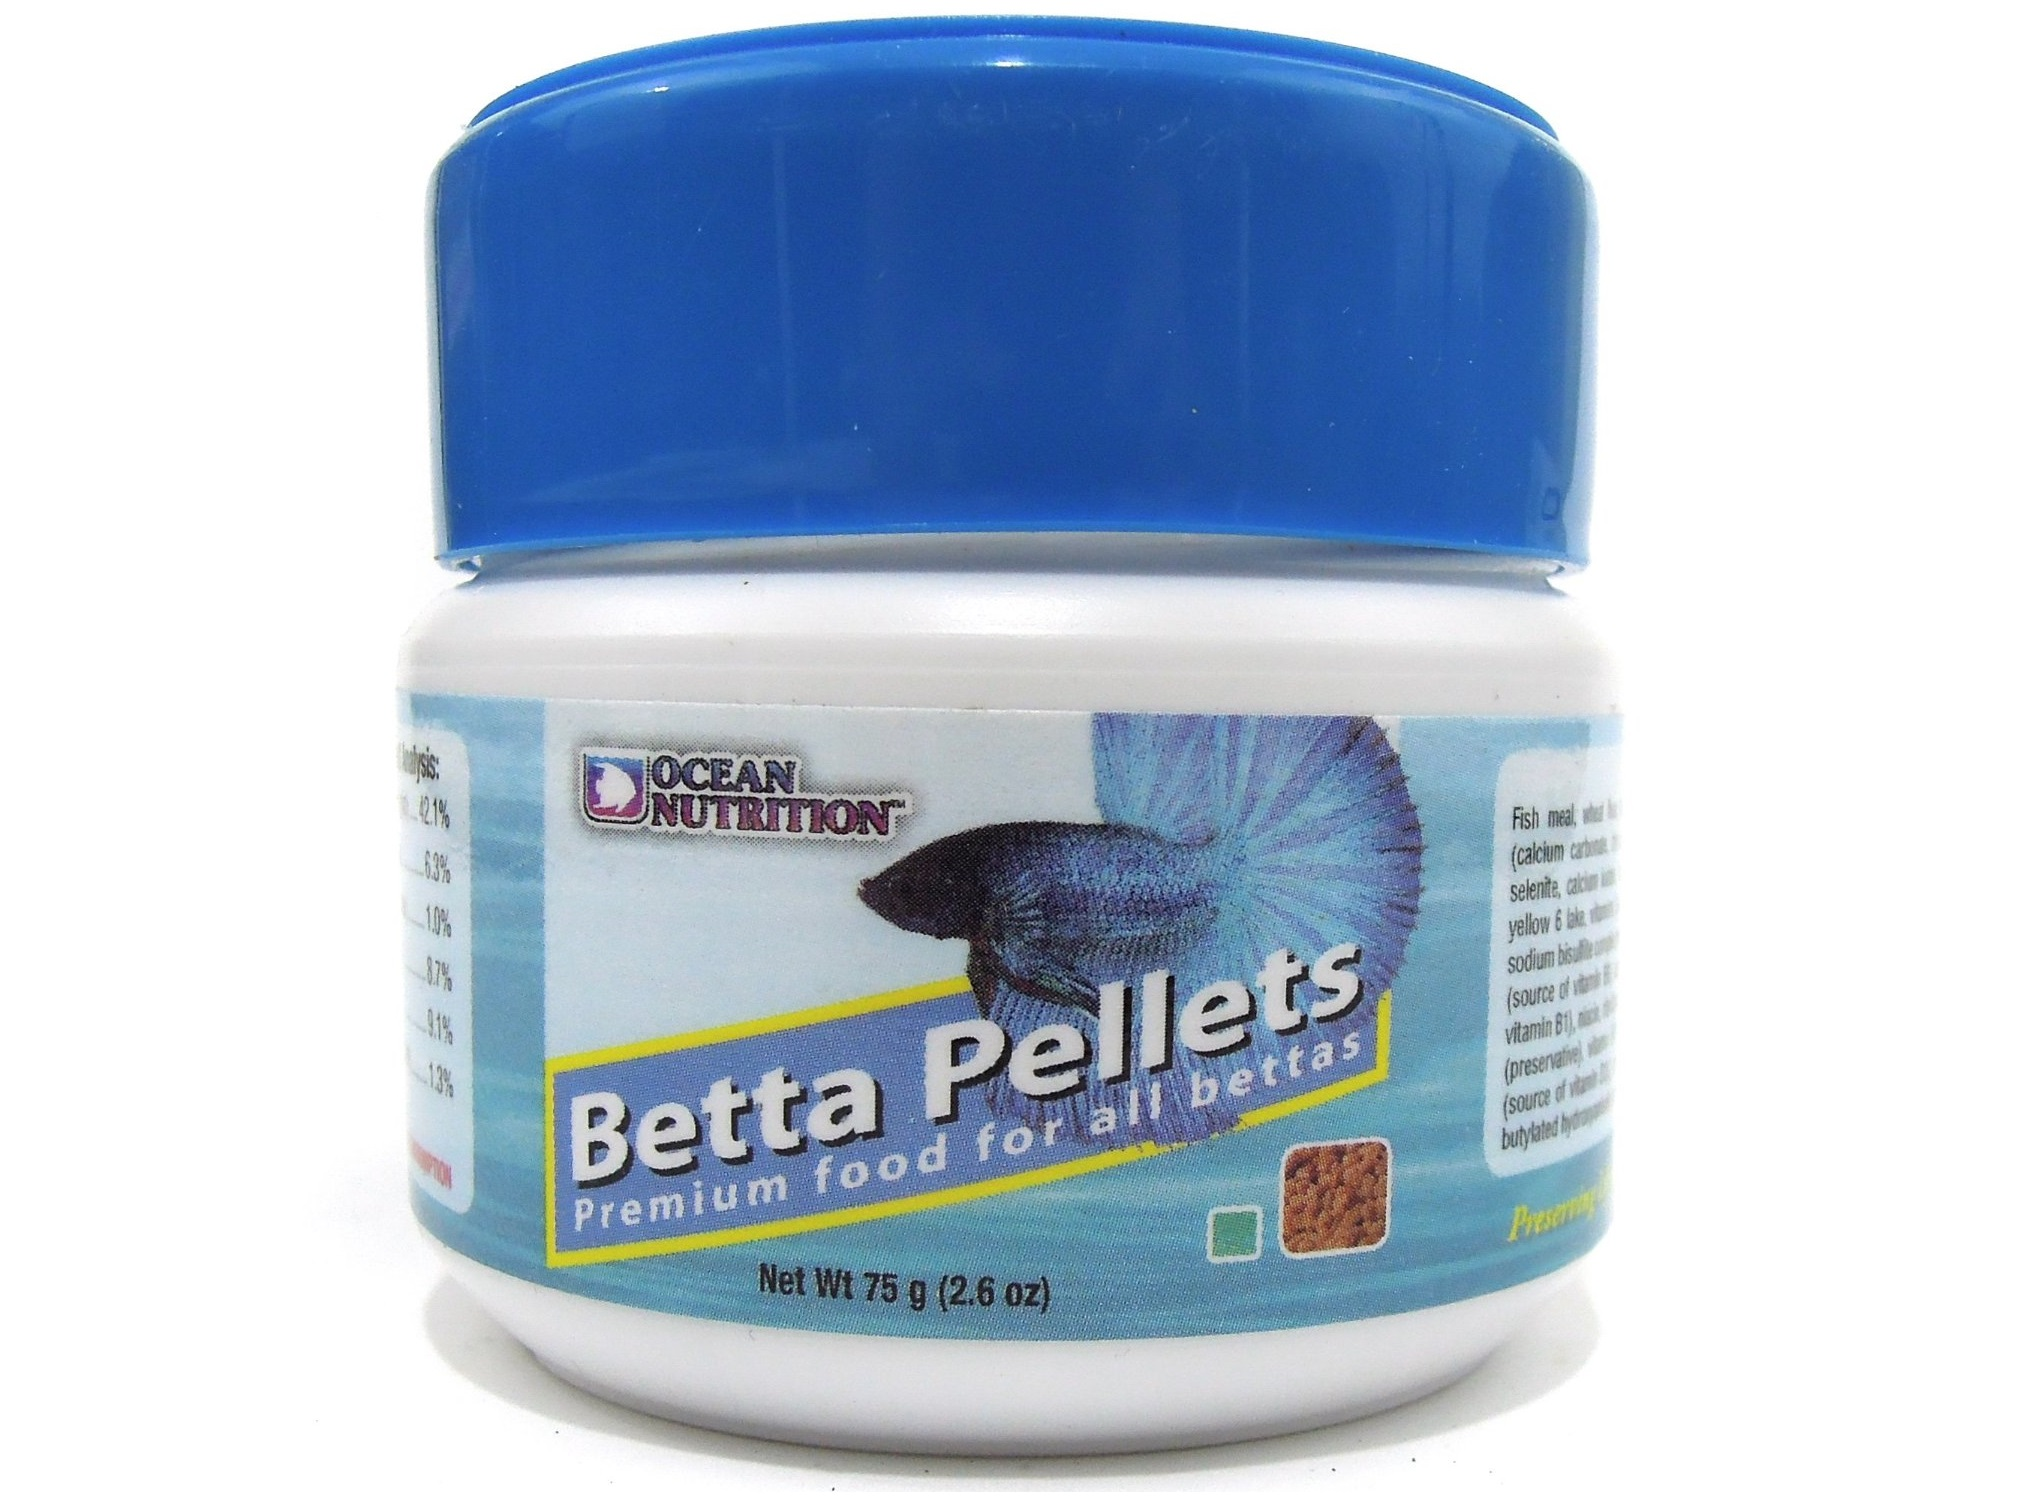 Ocean nutrition betta pellets land of fish for Betta fish pellets